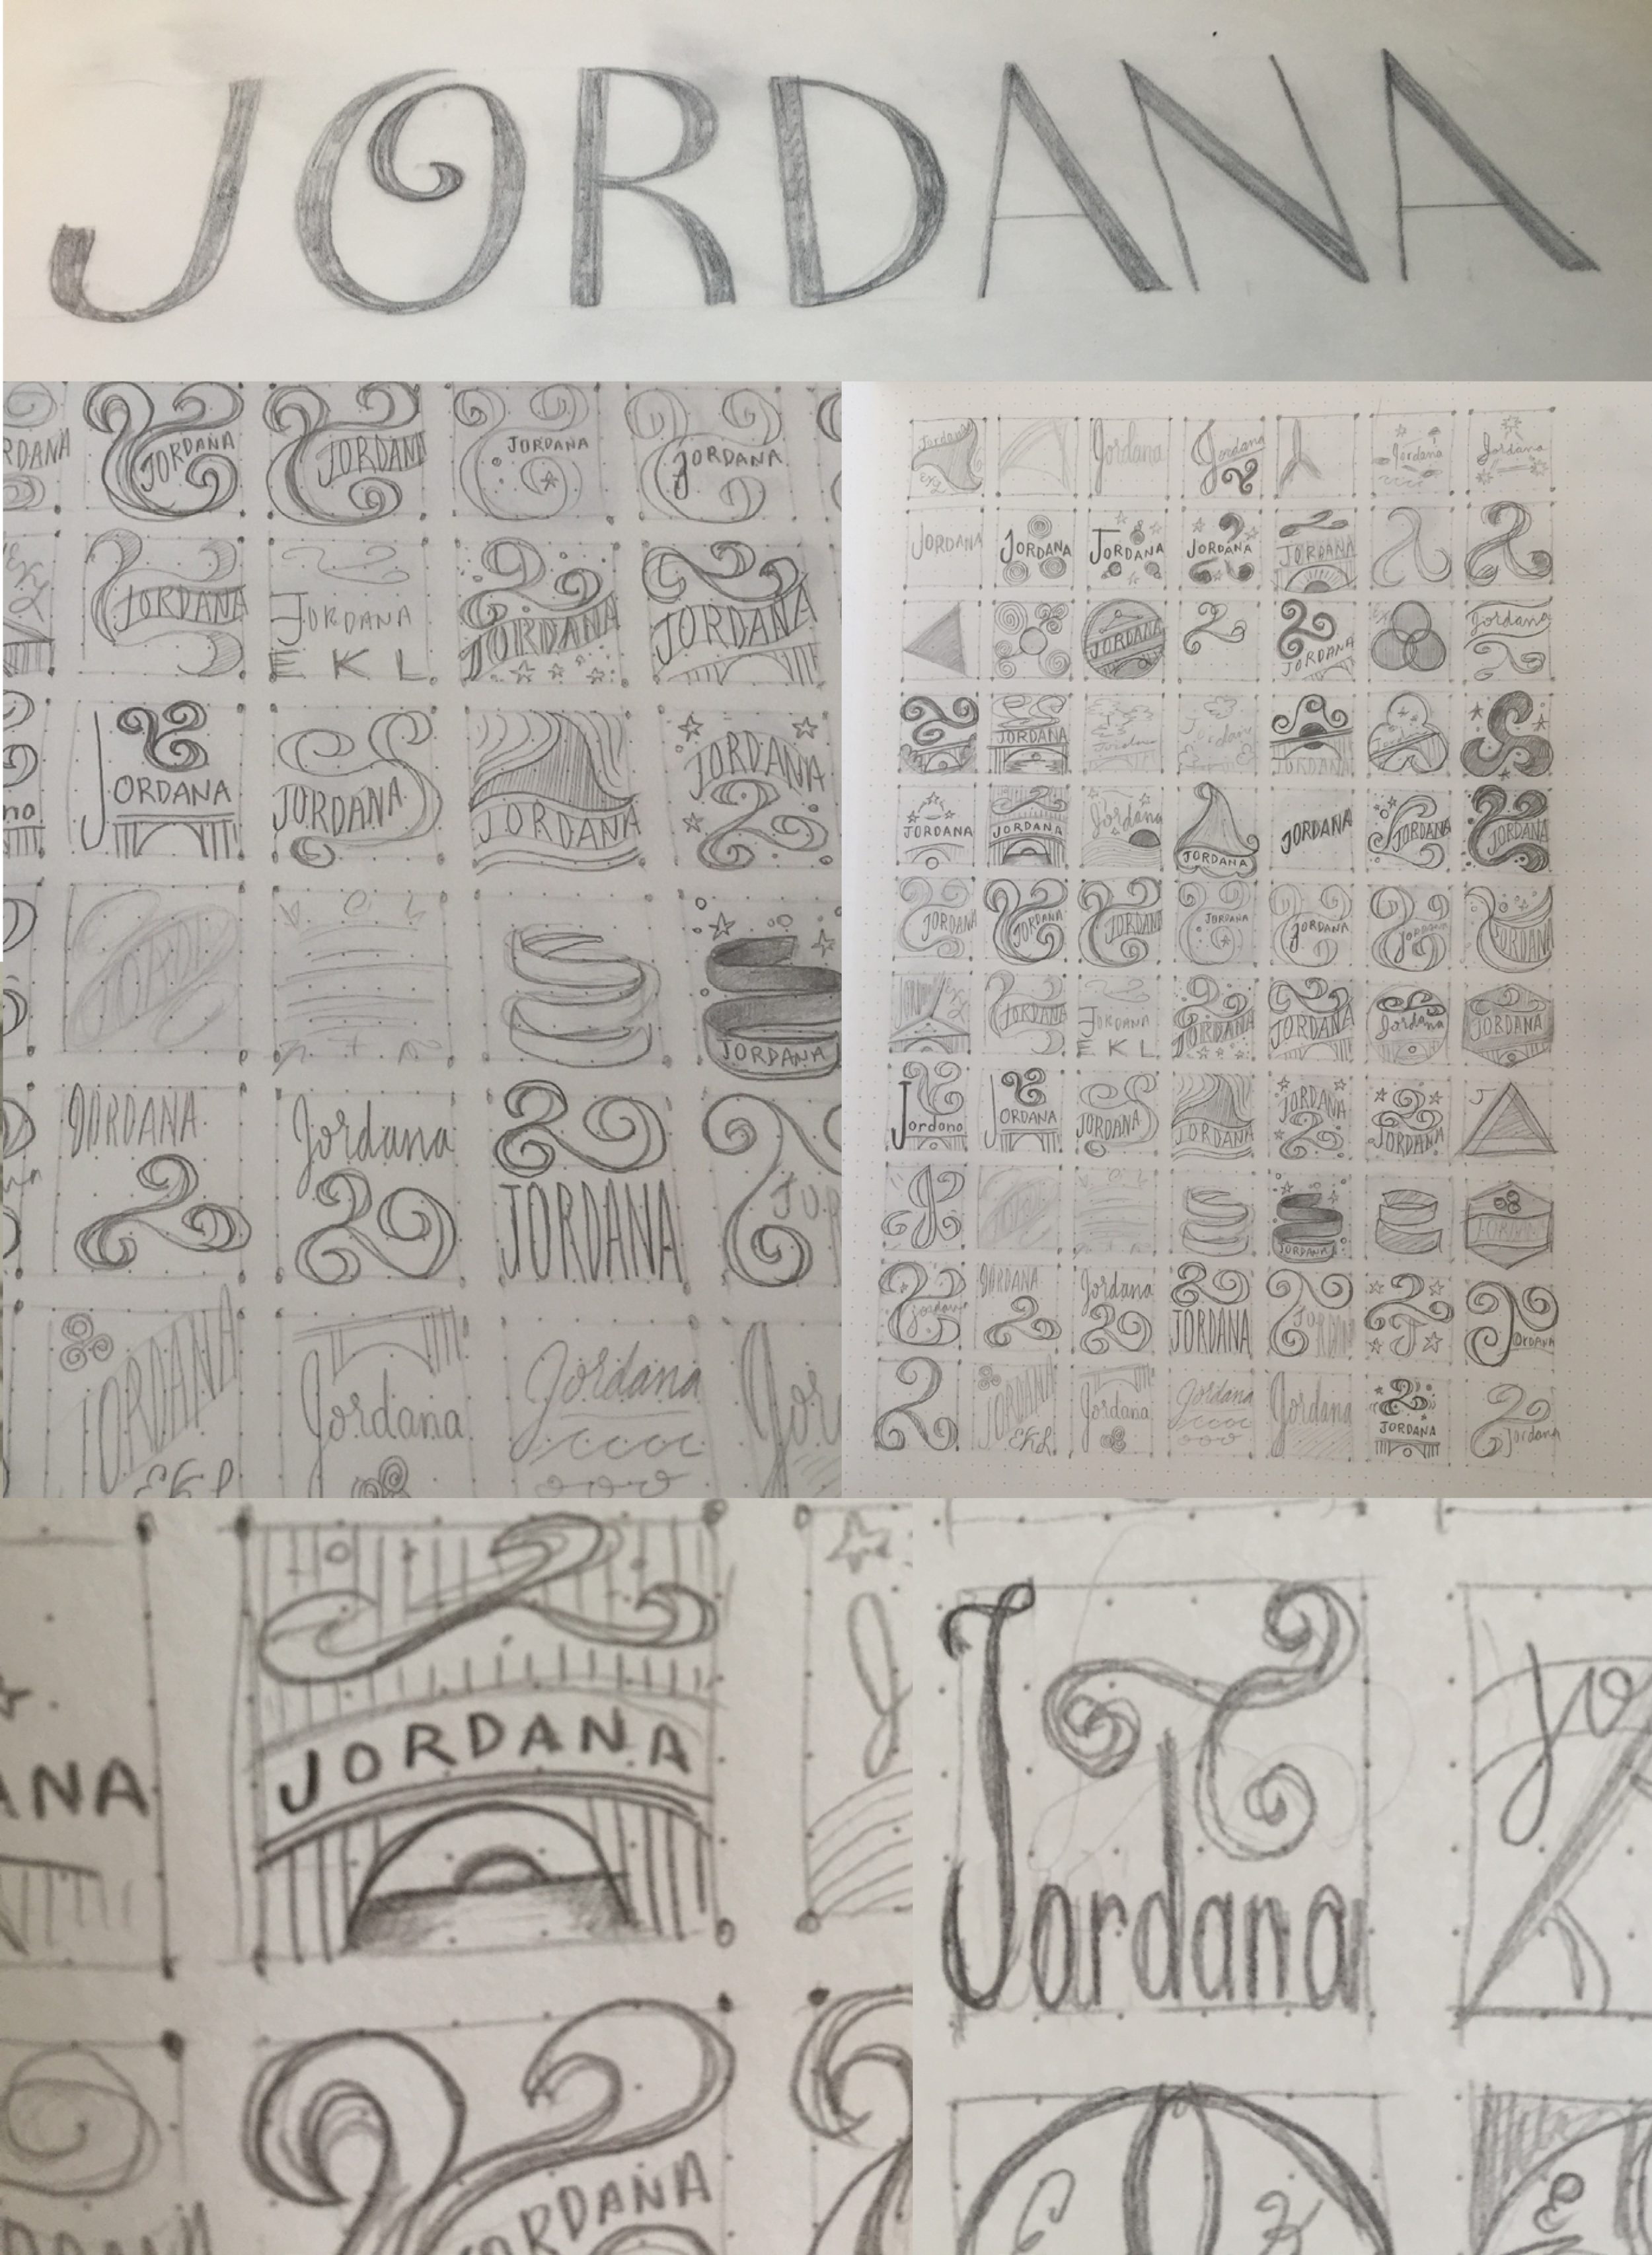 The thumbnailing process was quite extensive.